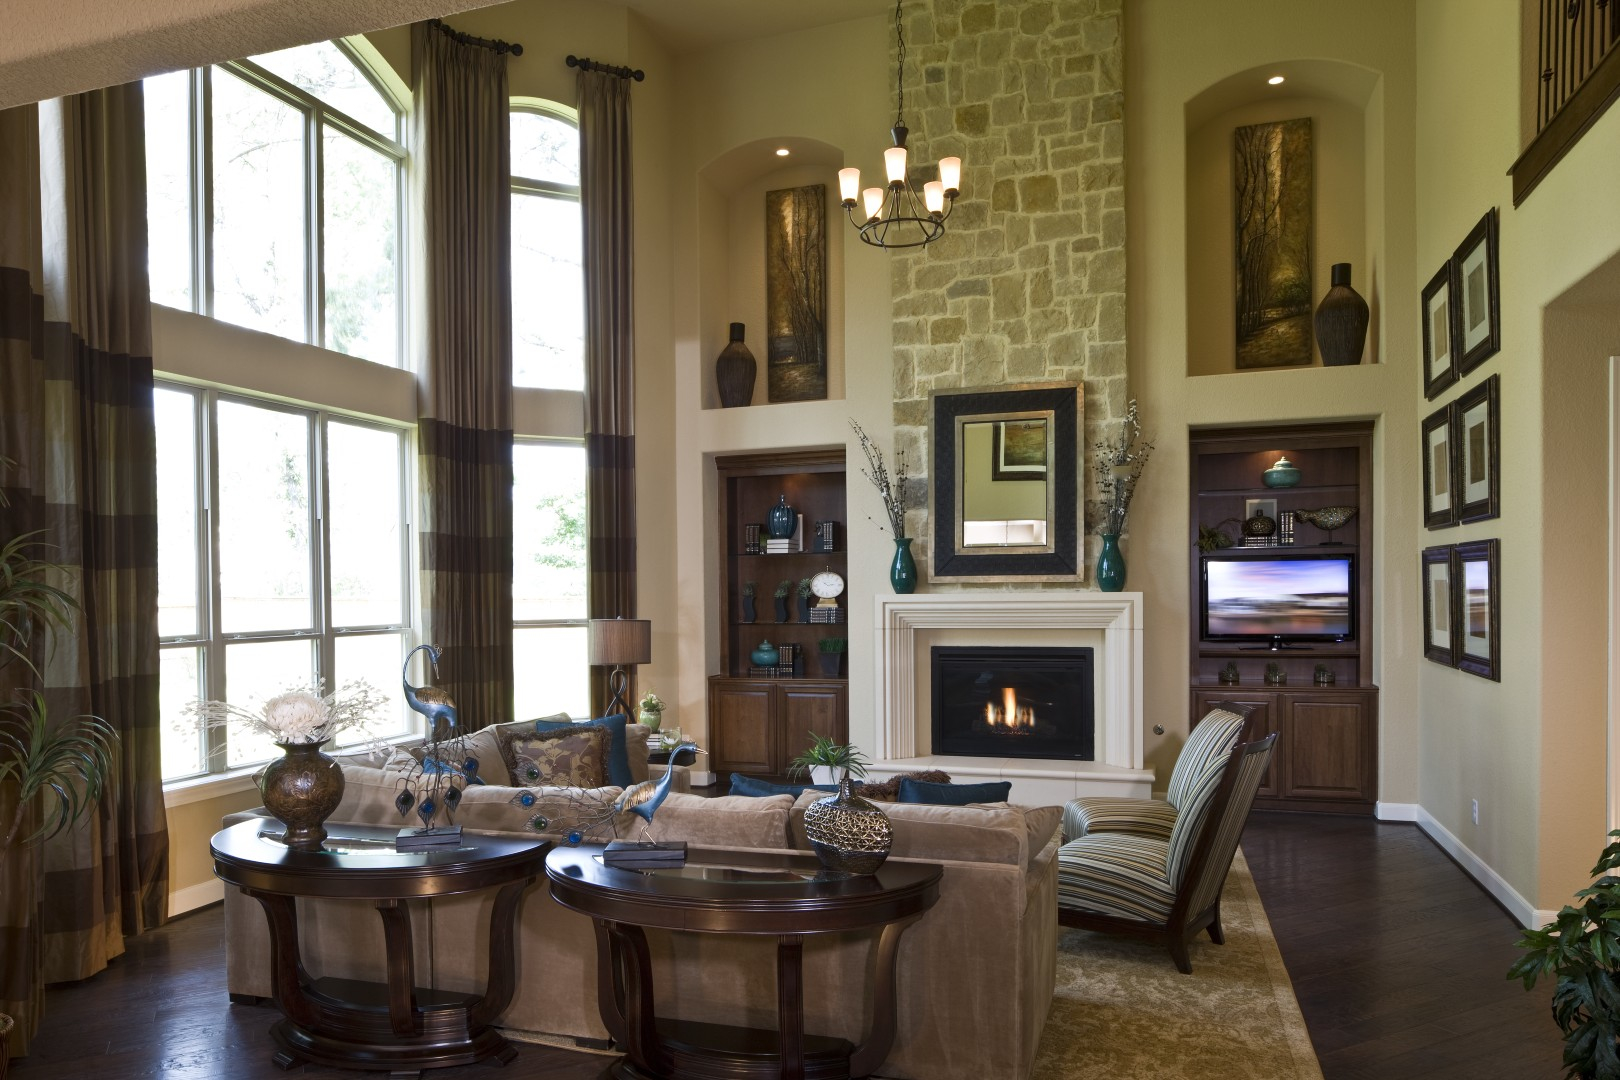 Model Home Foyer Pictures : Toll brothers showcases new model in cinco ranchs gated sycamore